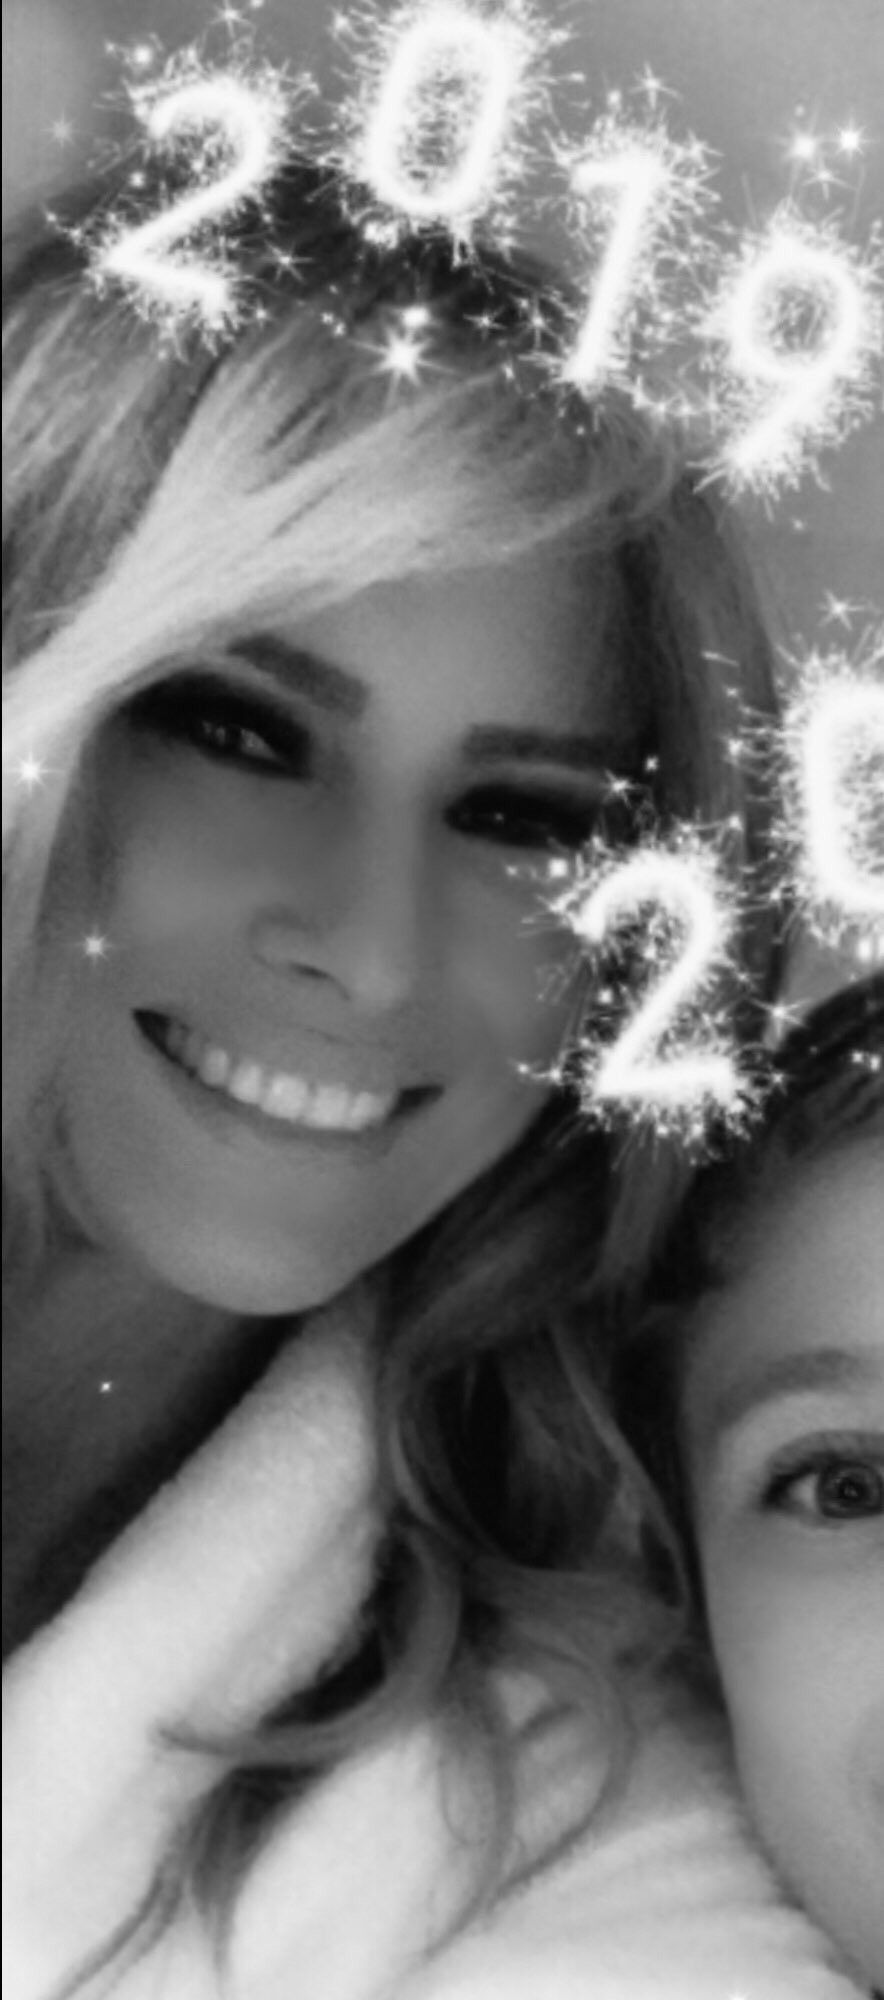 Happy New Year! FLOTUS #Melania Trump posts a selfie with her son Barron on January 1, 2019. 🎉